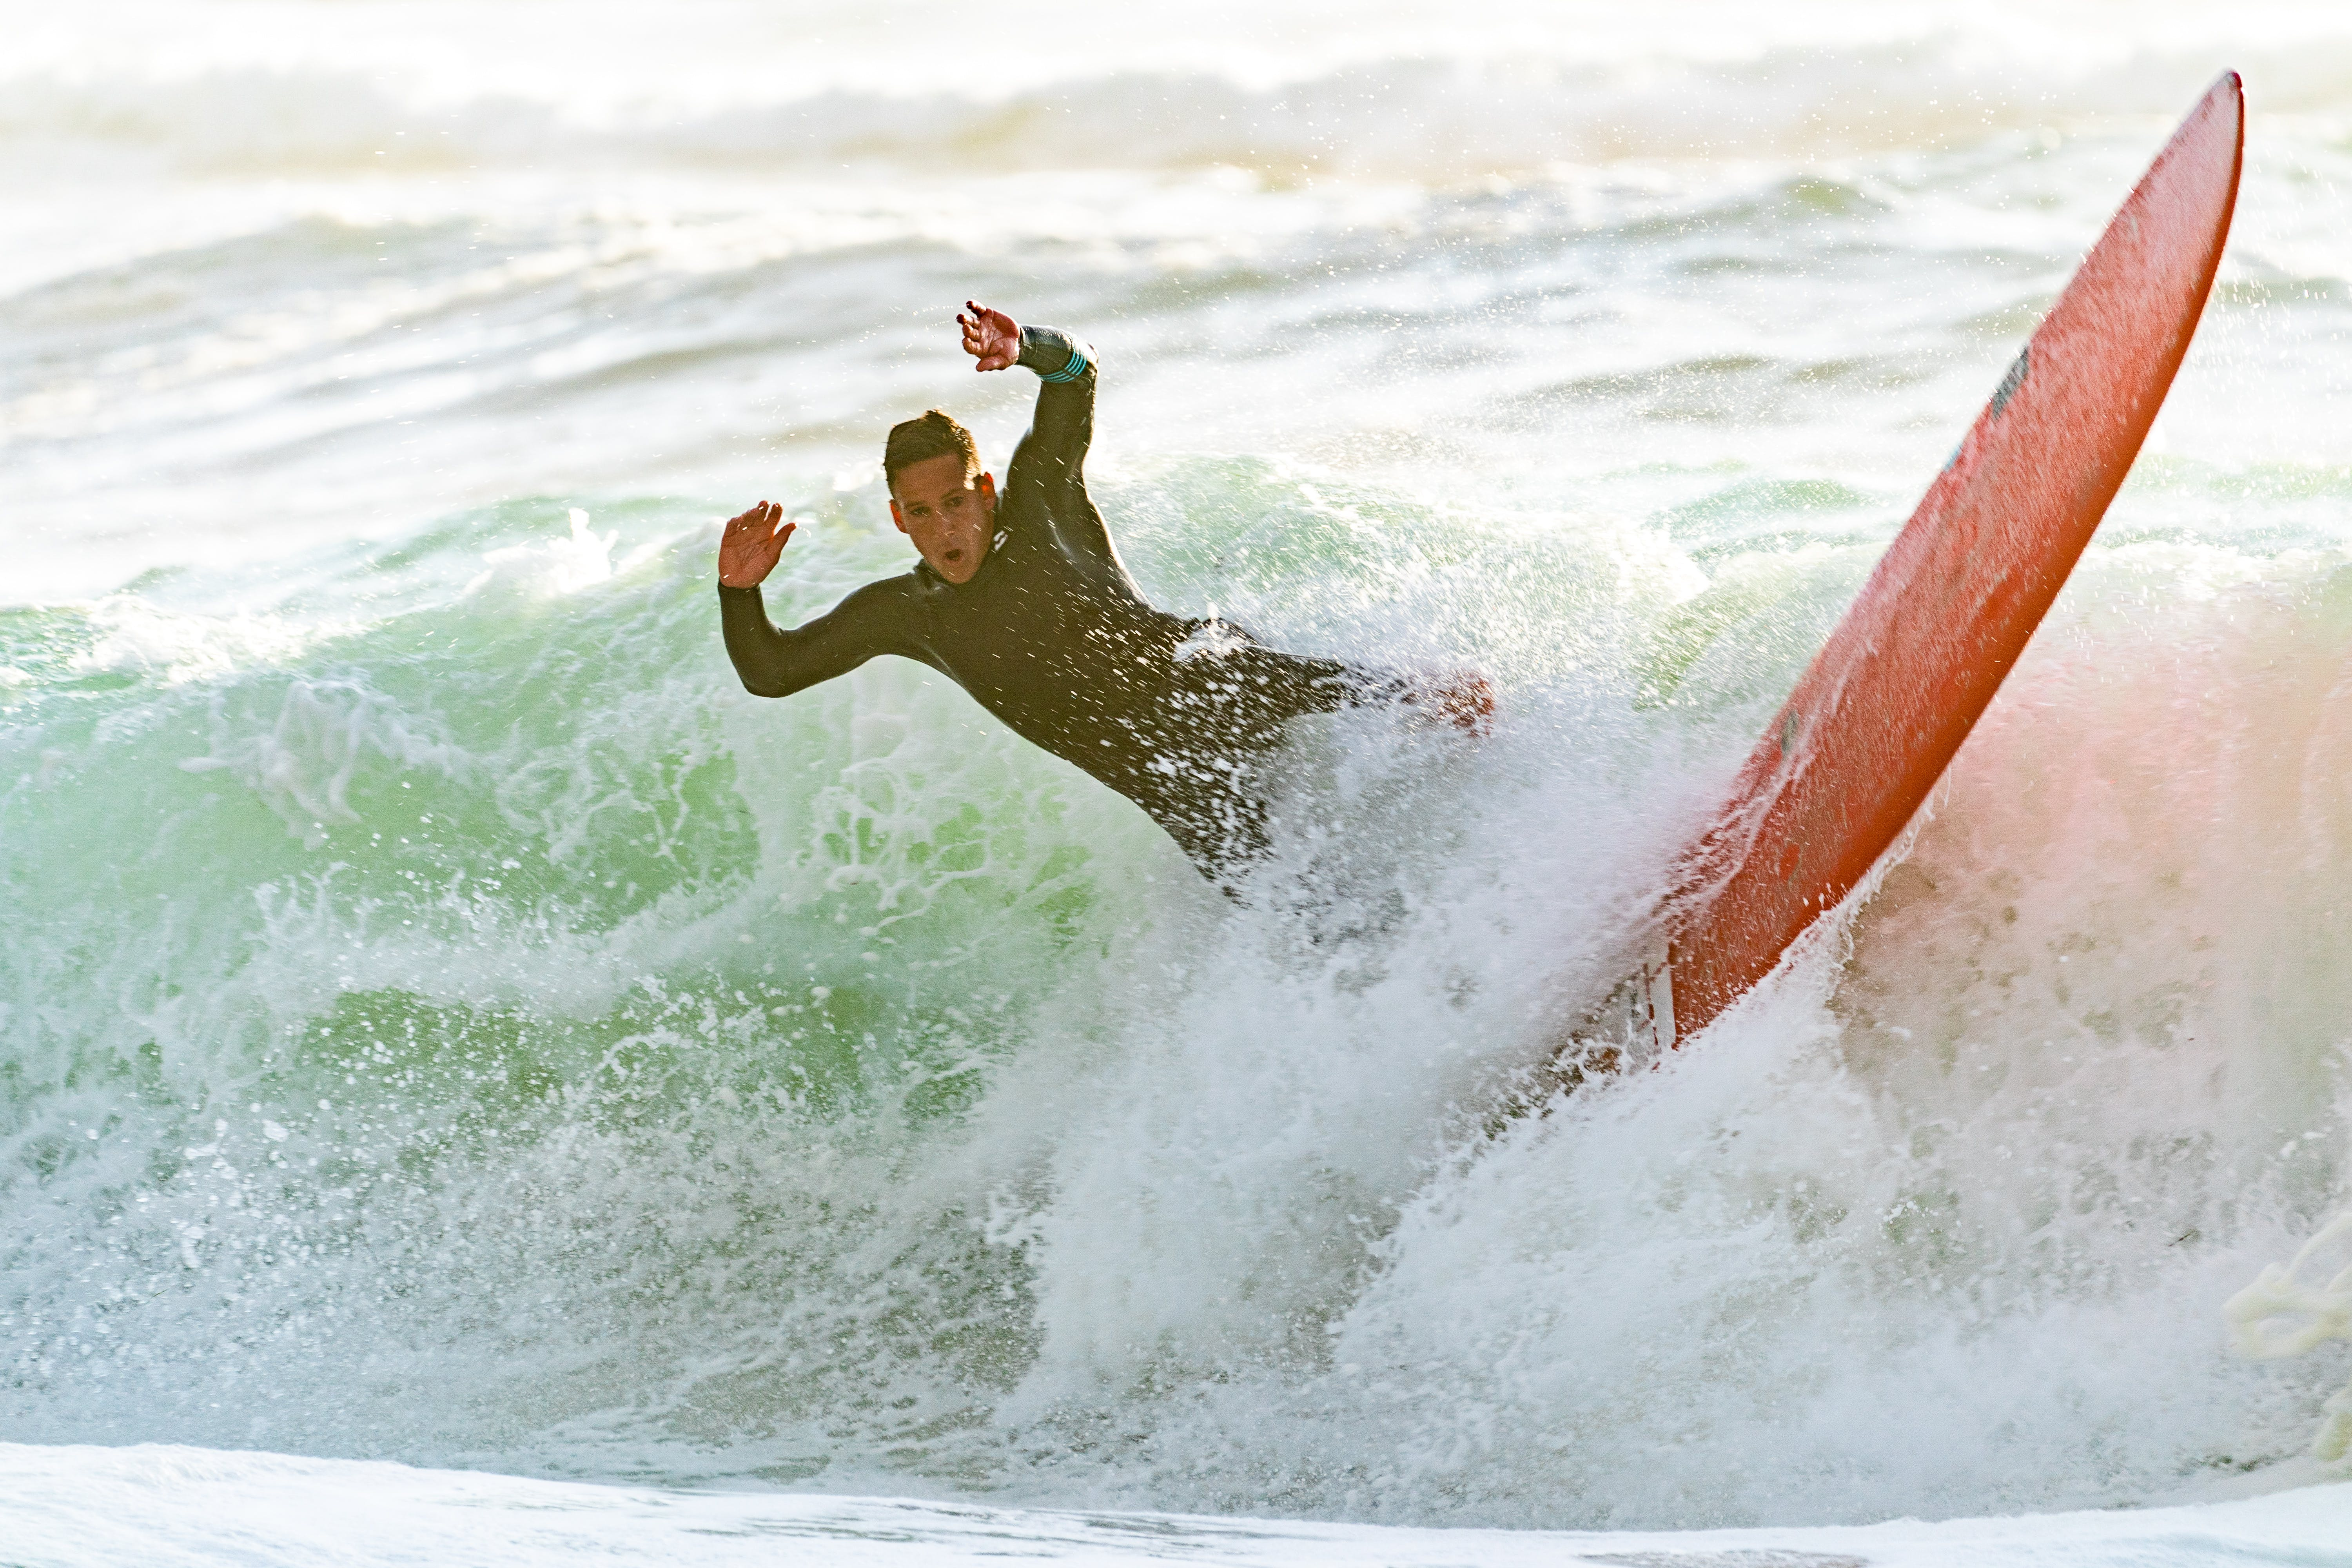 Man Riding a Wave on a Surfboard